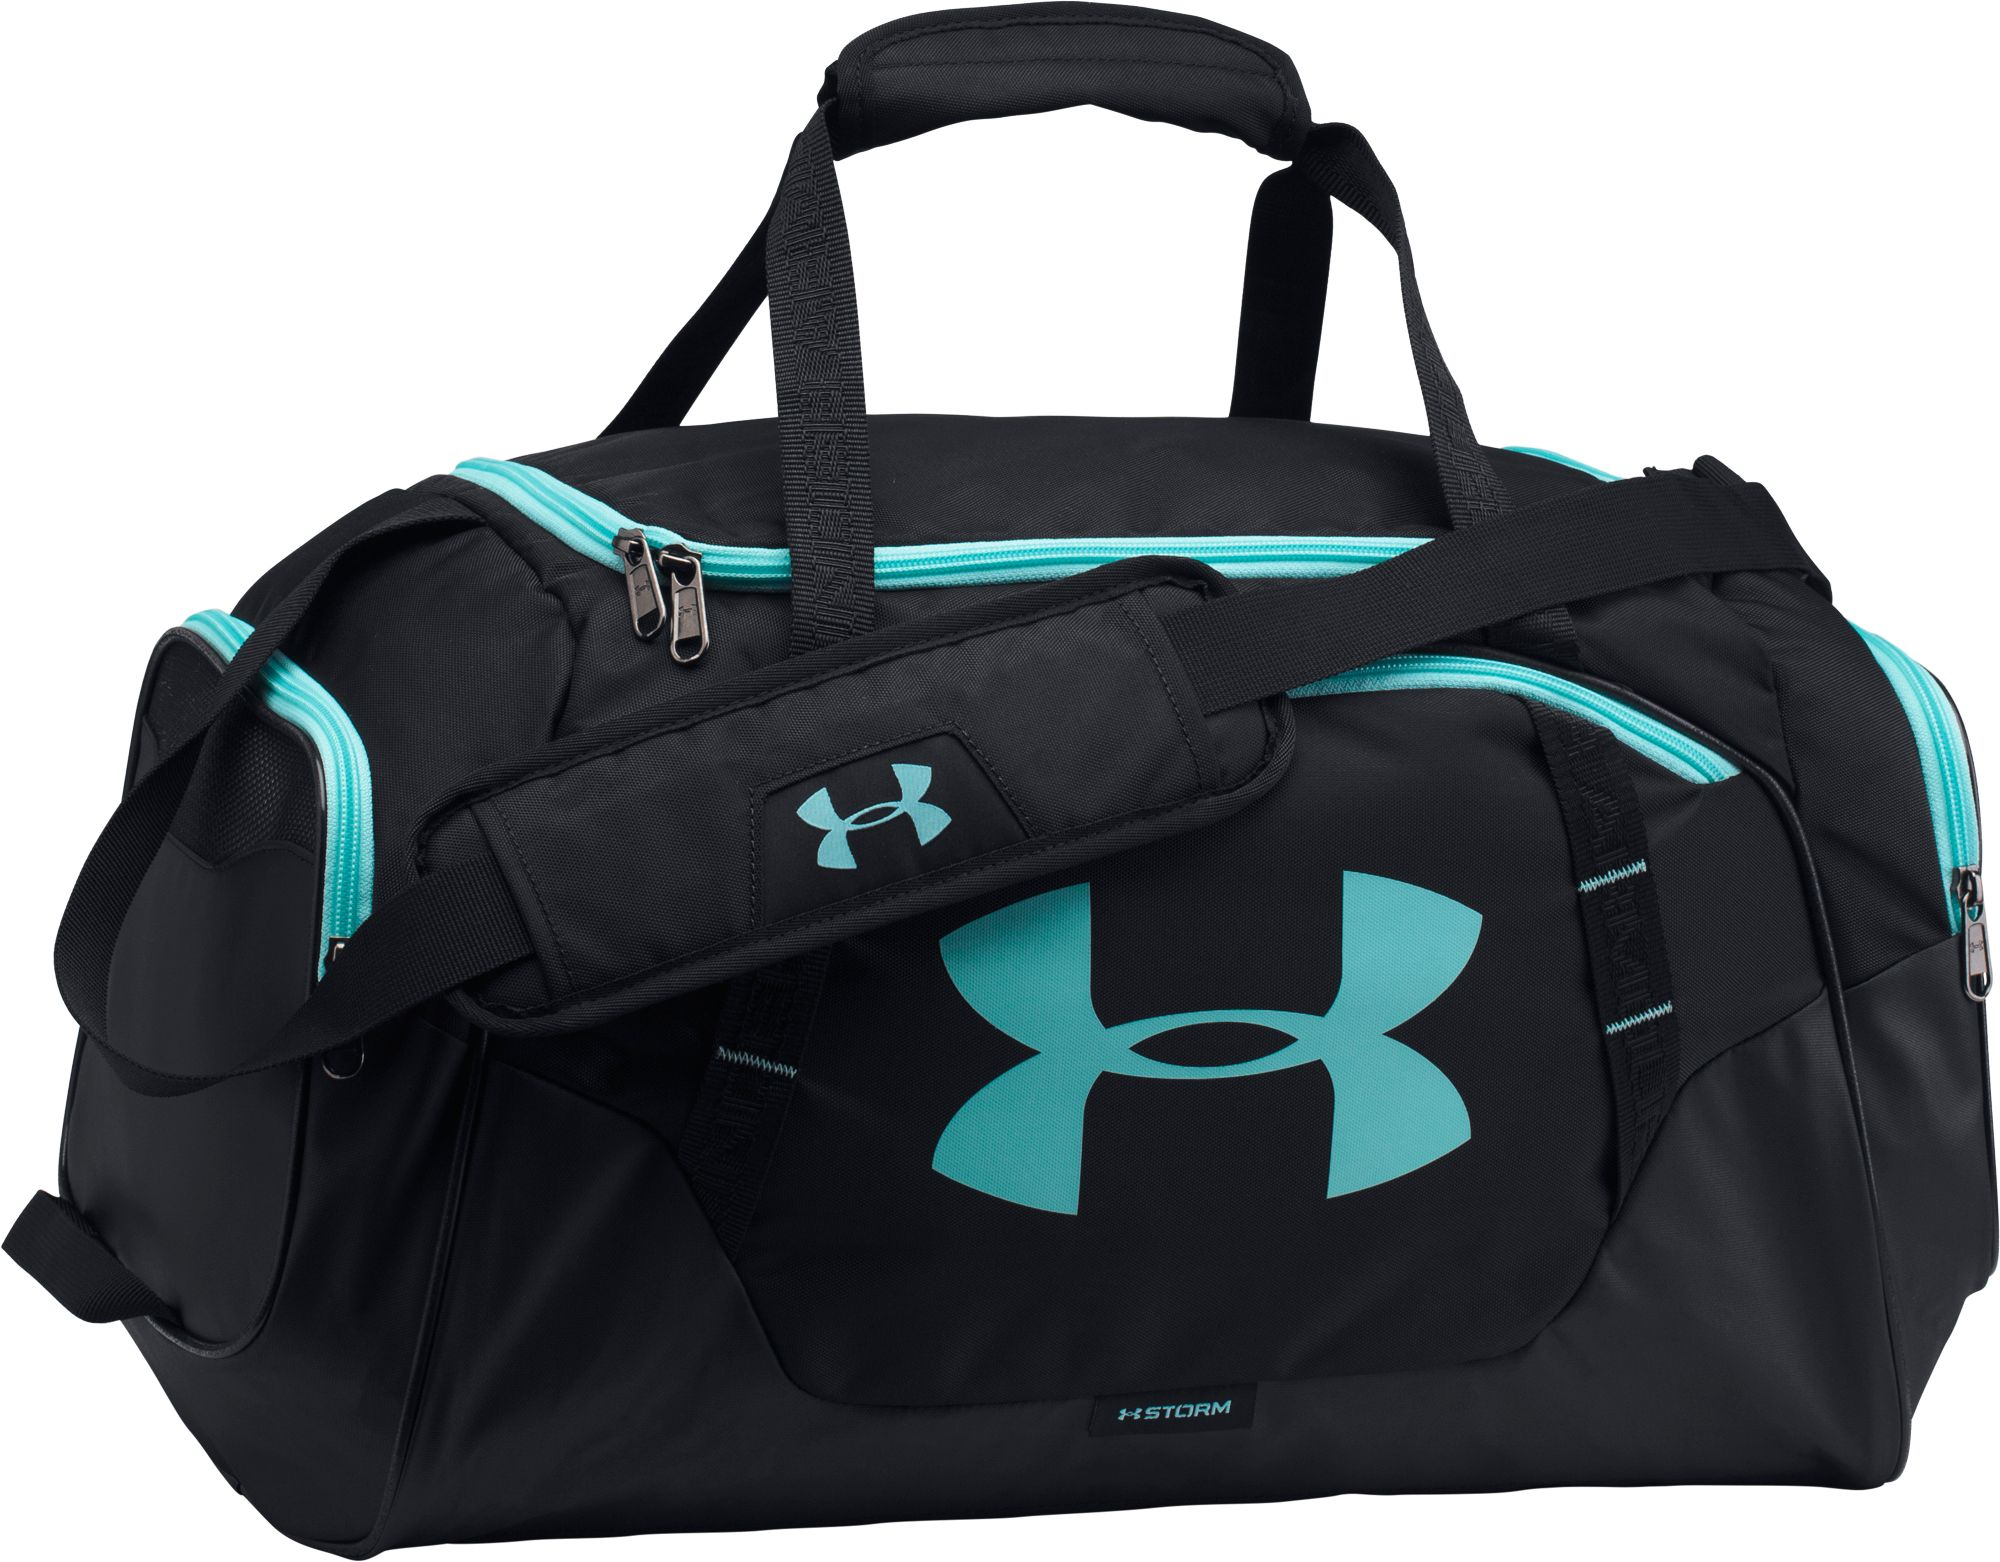 detailed look 7764a cbb0a Under Armour Undeniable 3.0 Medium Duffle Bag, Black in 2019   Products    Under armour backpack, Duffel bag, Bags